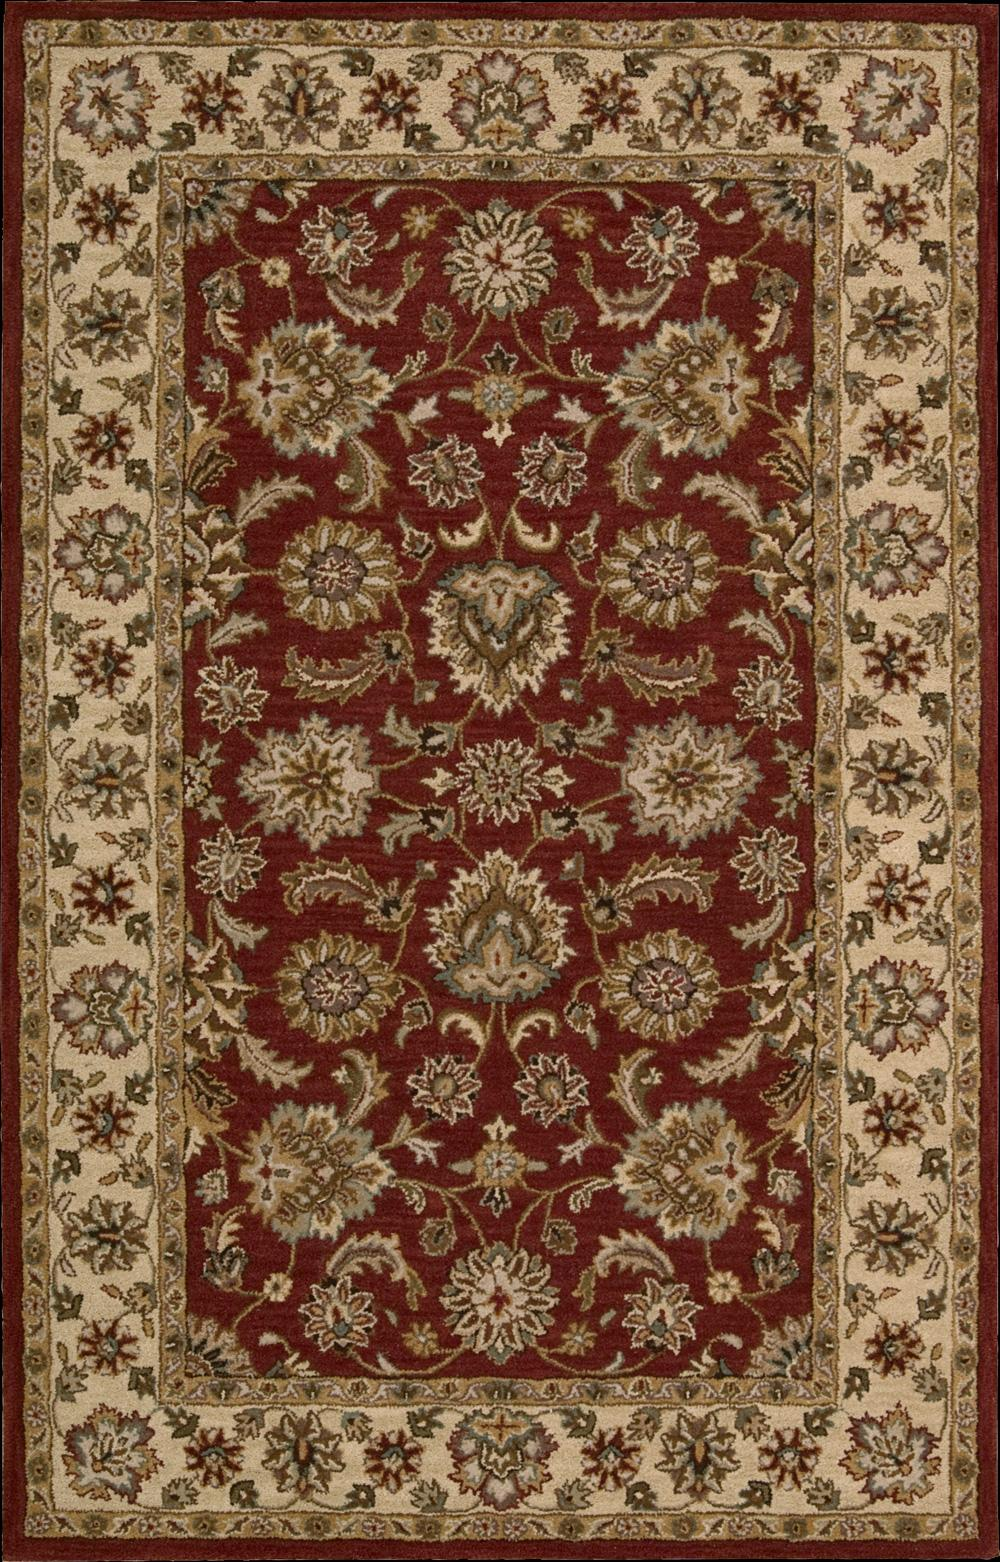 Nourison India House Area Rug 5' x 8' - Item Number: 41628